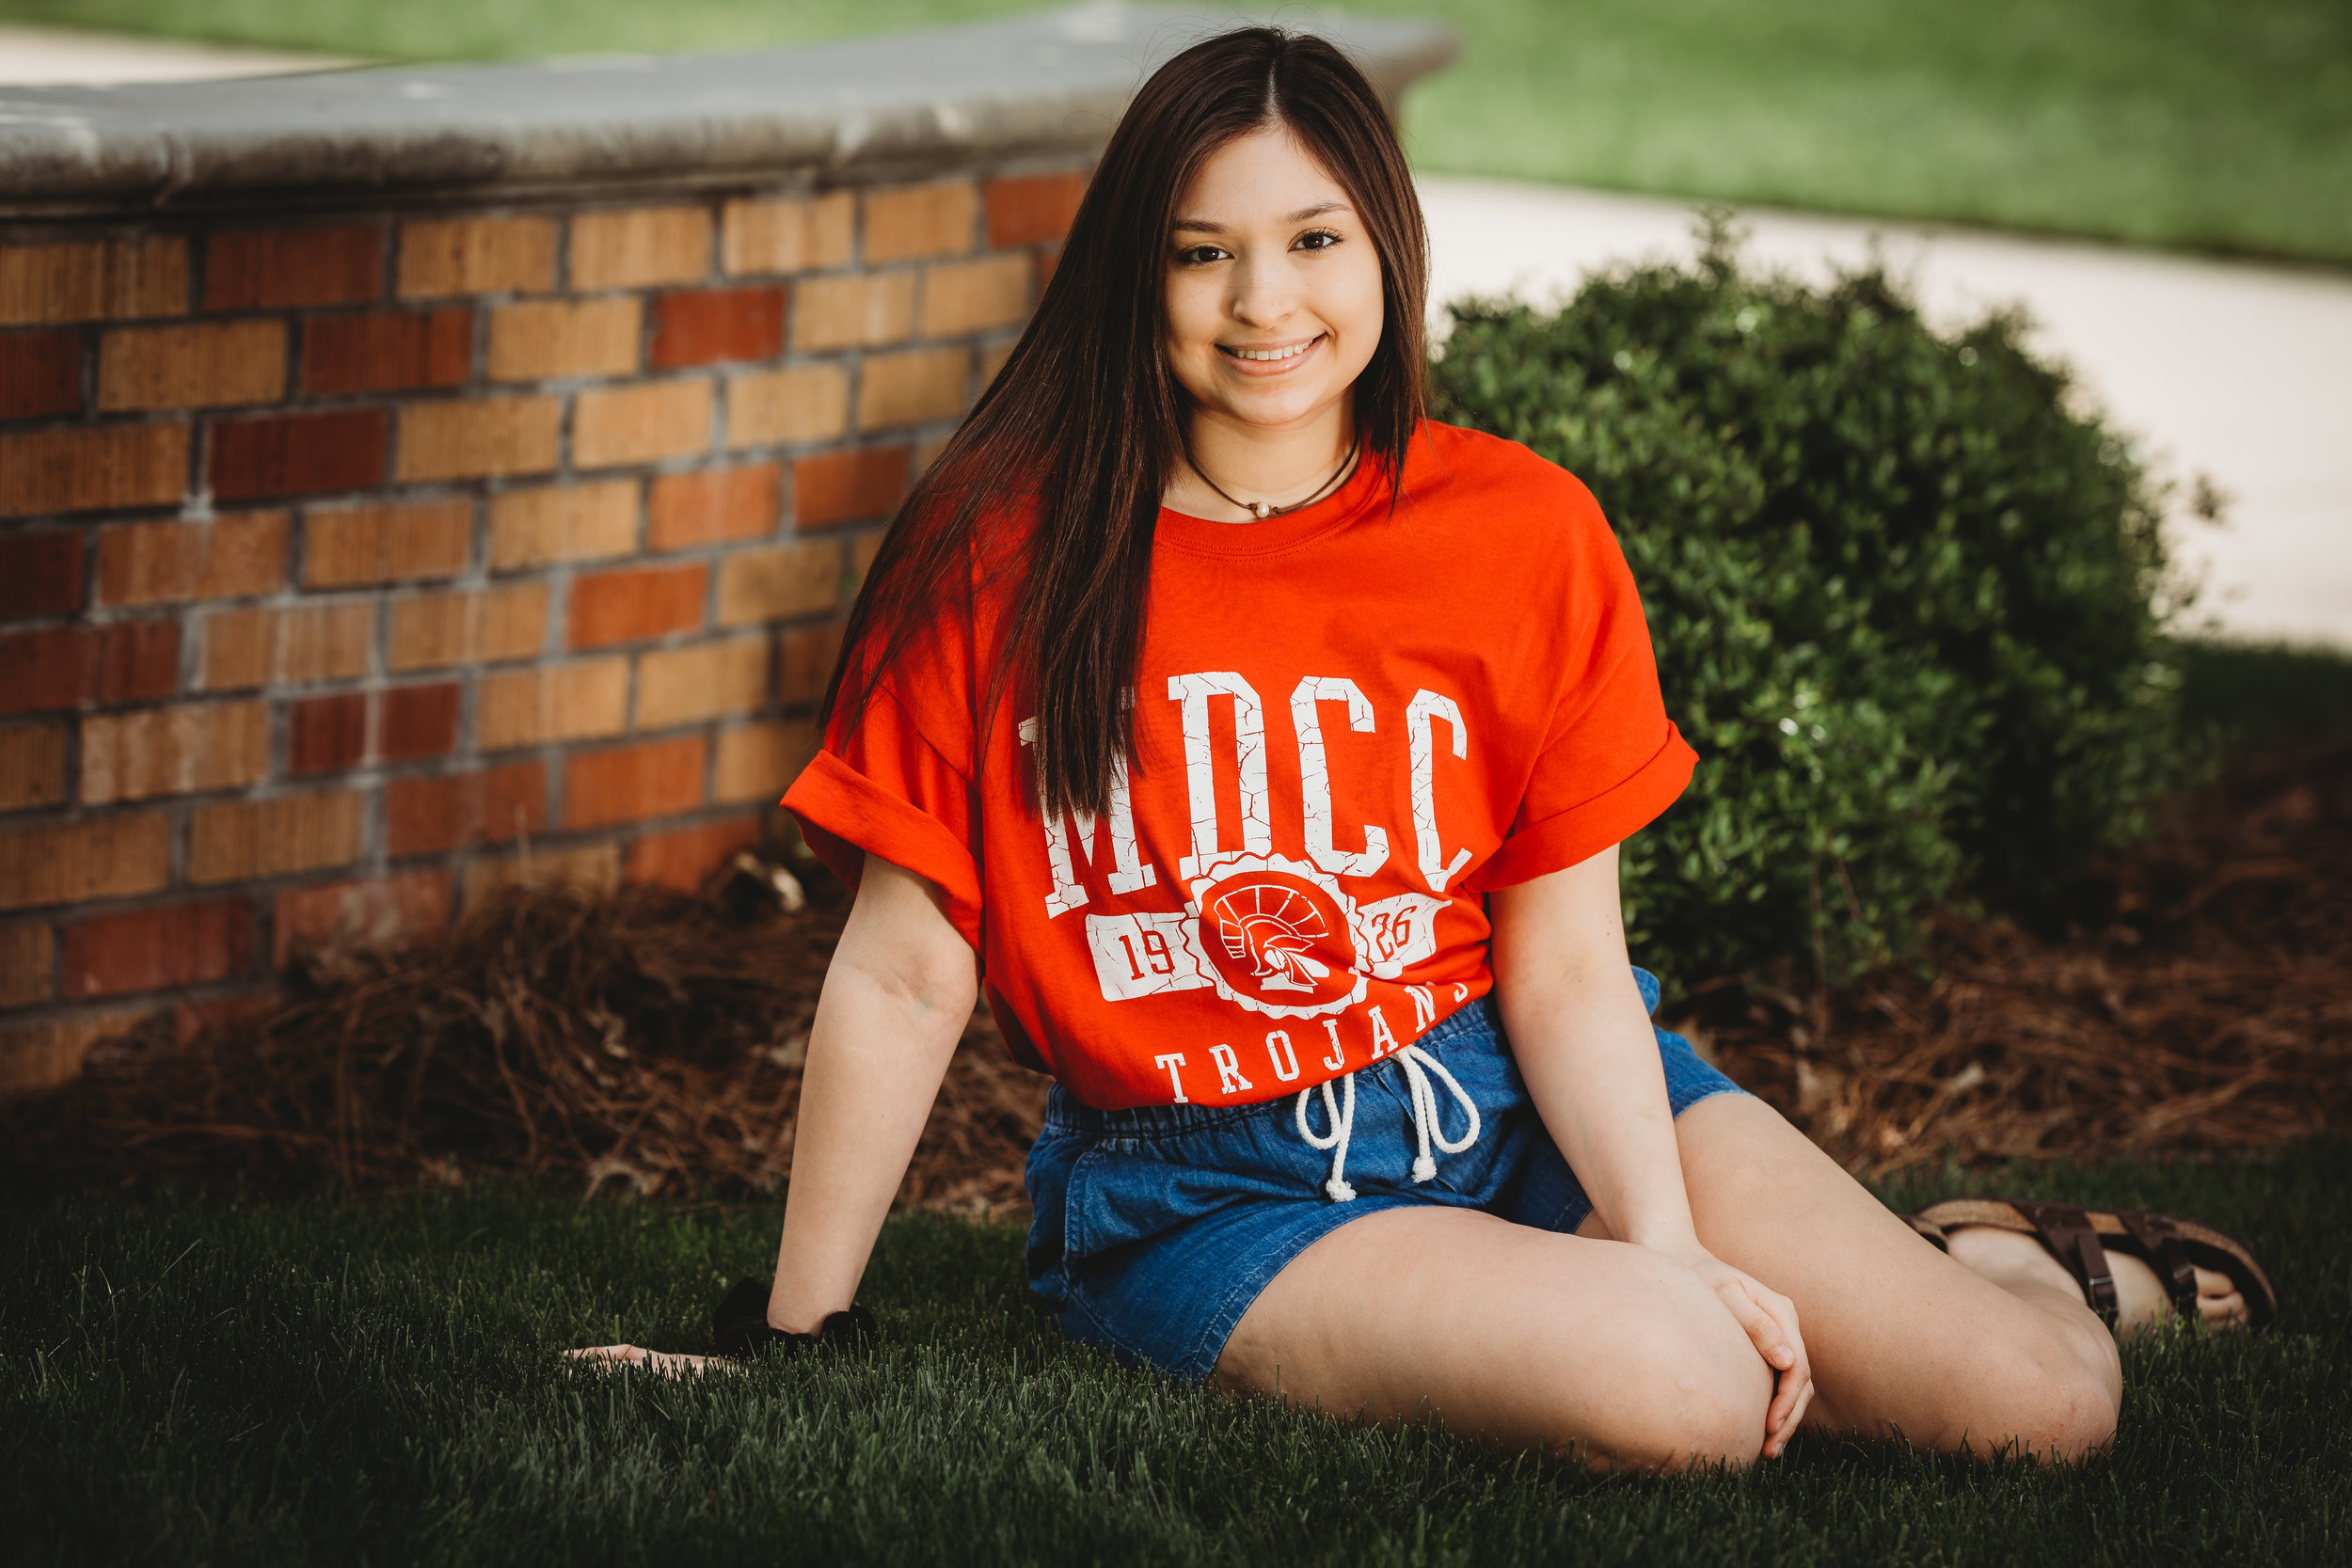 SeniorGrads2019_3 - Copy (2).JPG